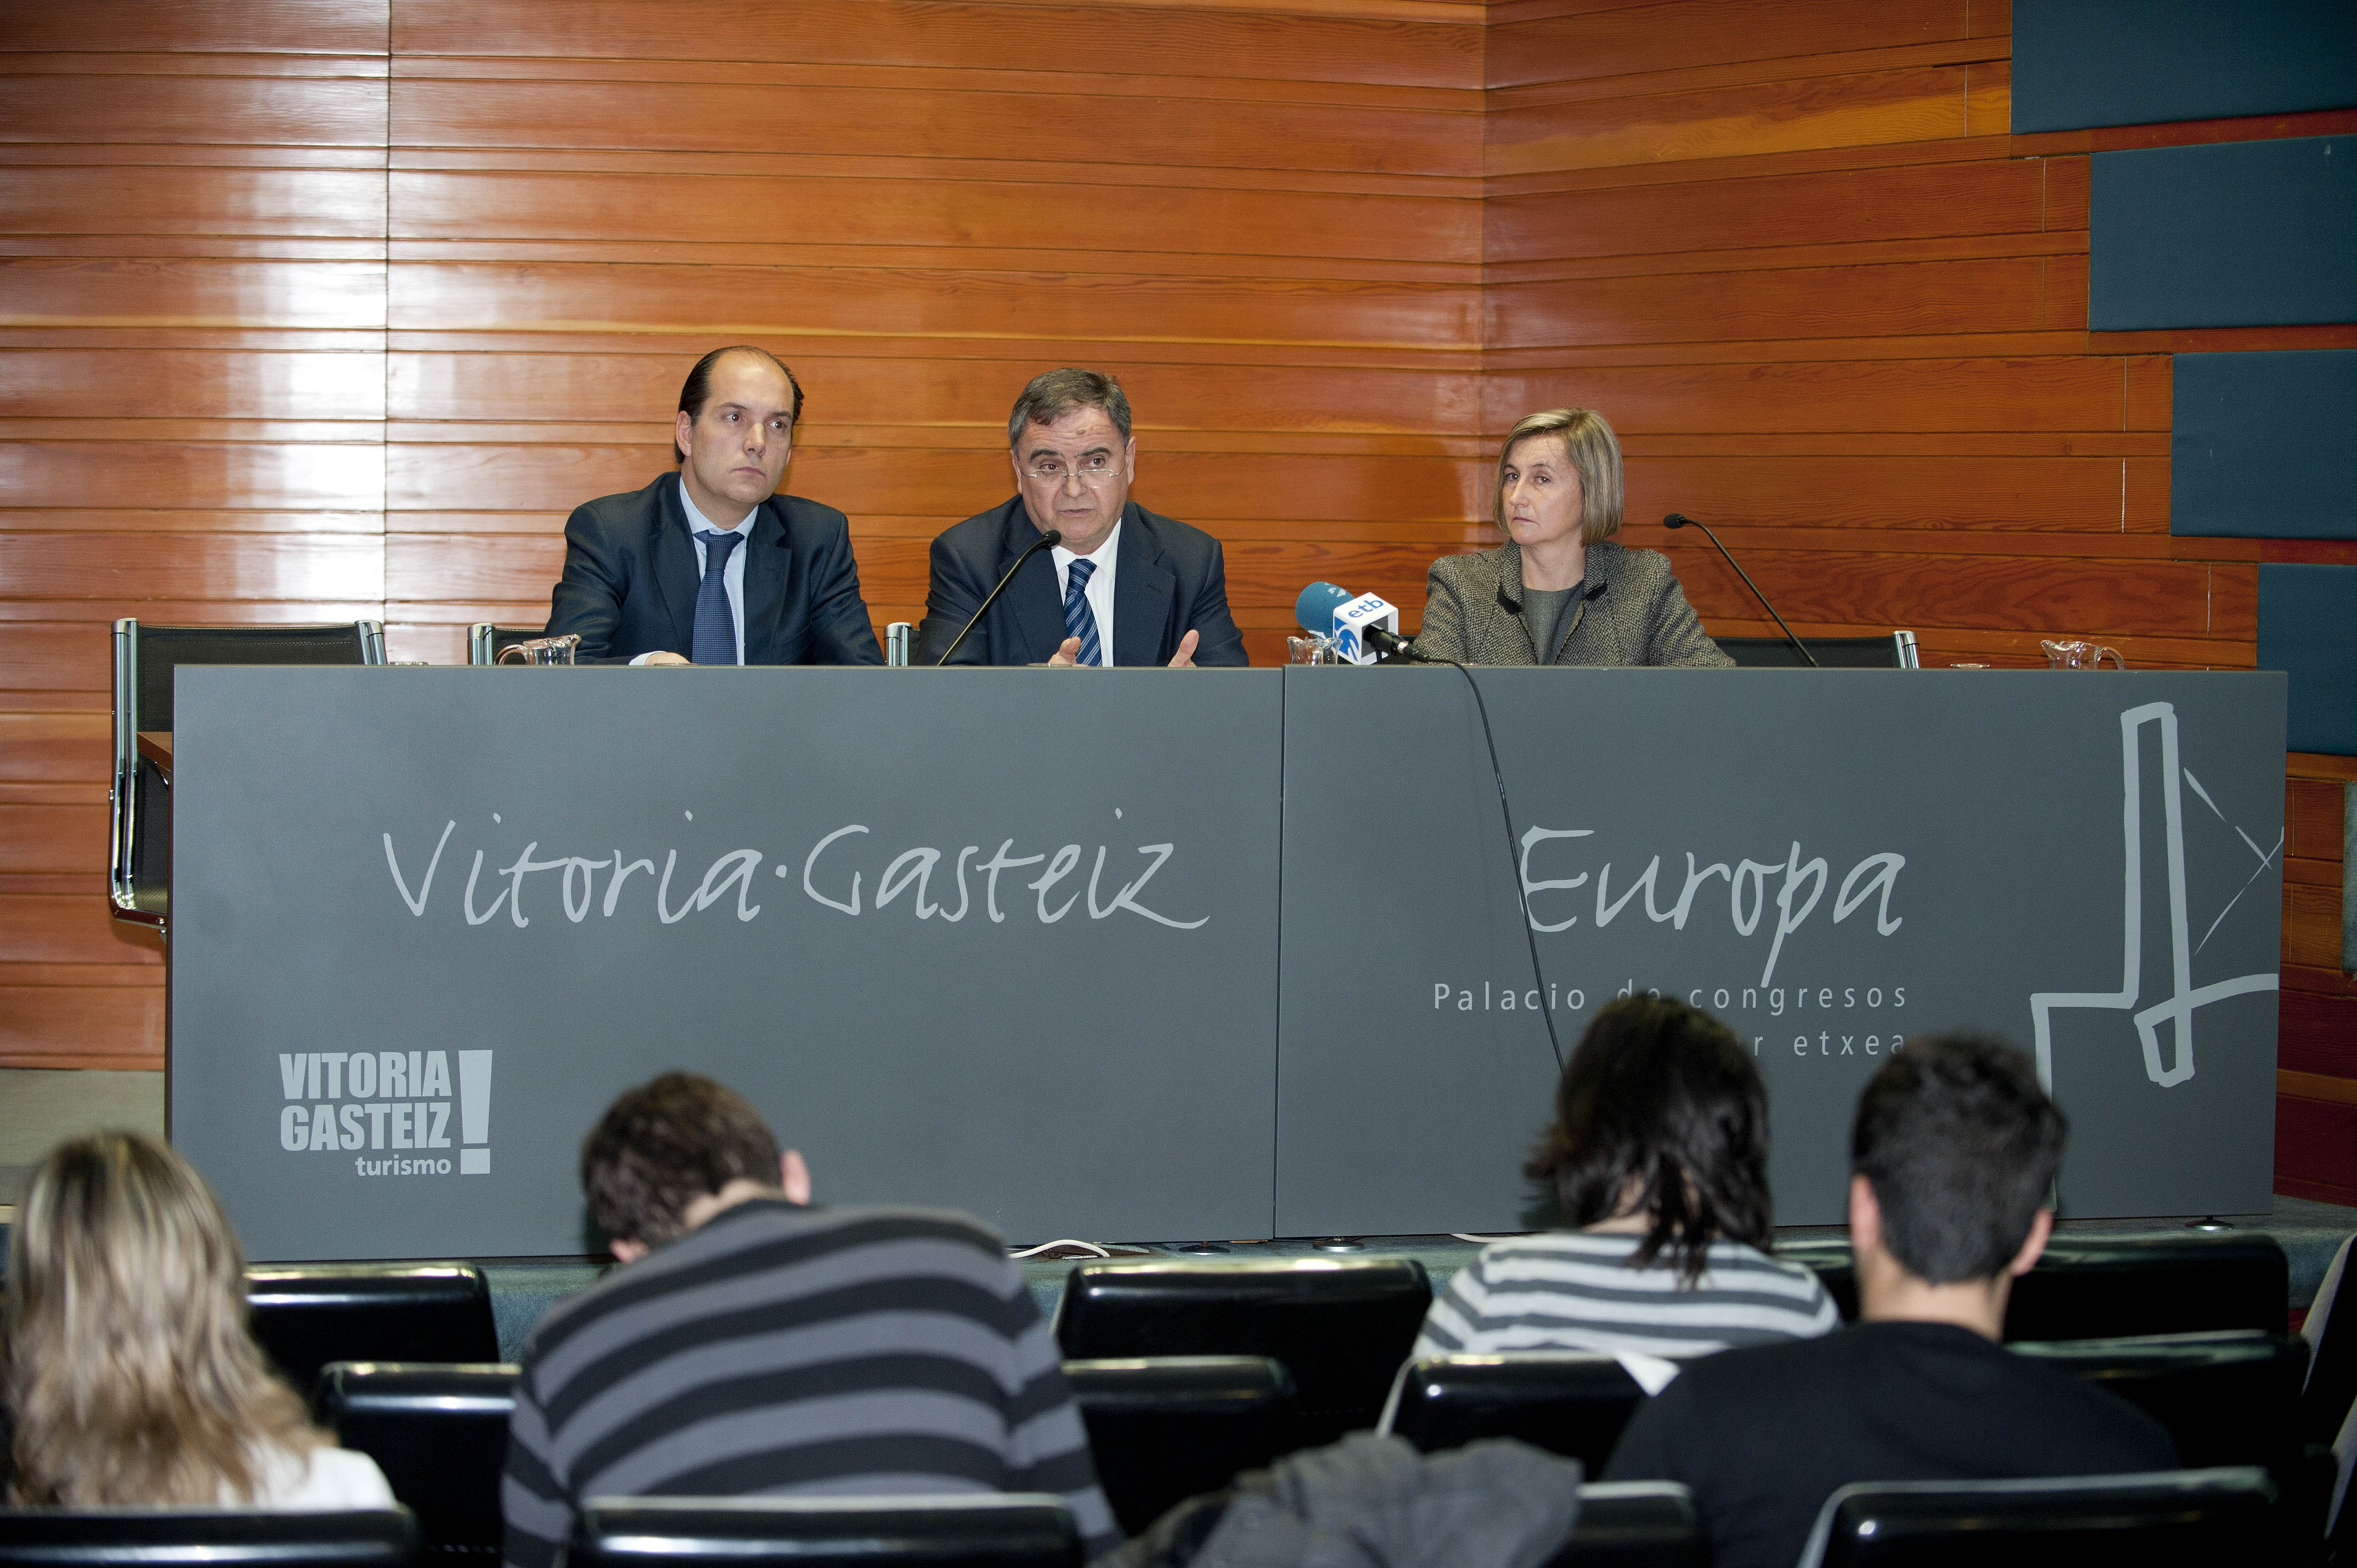 Vitoria-Gasteiz rene a los principales expertos mundiales en las jornadas de gas no convencional